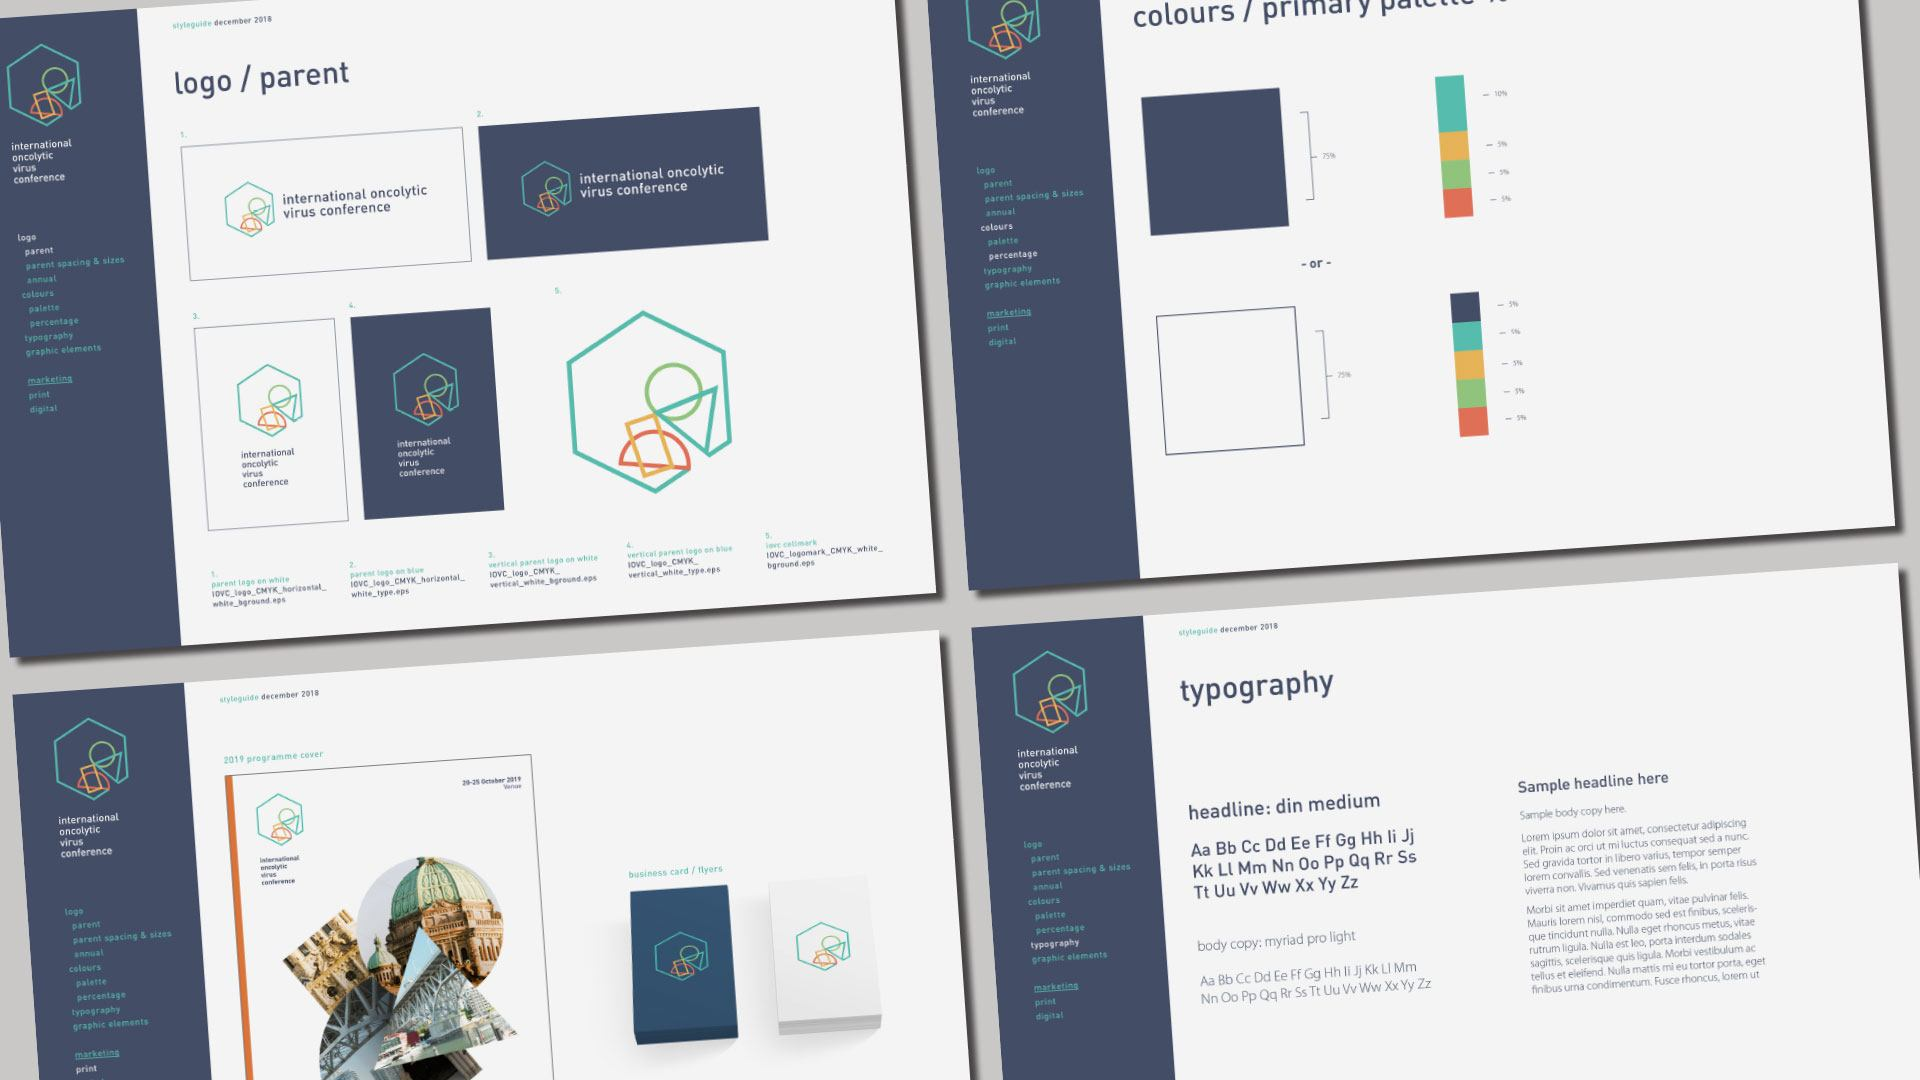 International Oncolytic Virus Conference print layout